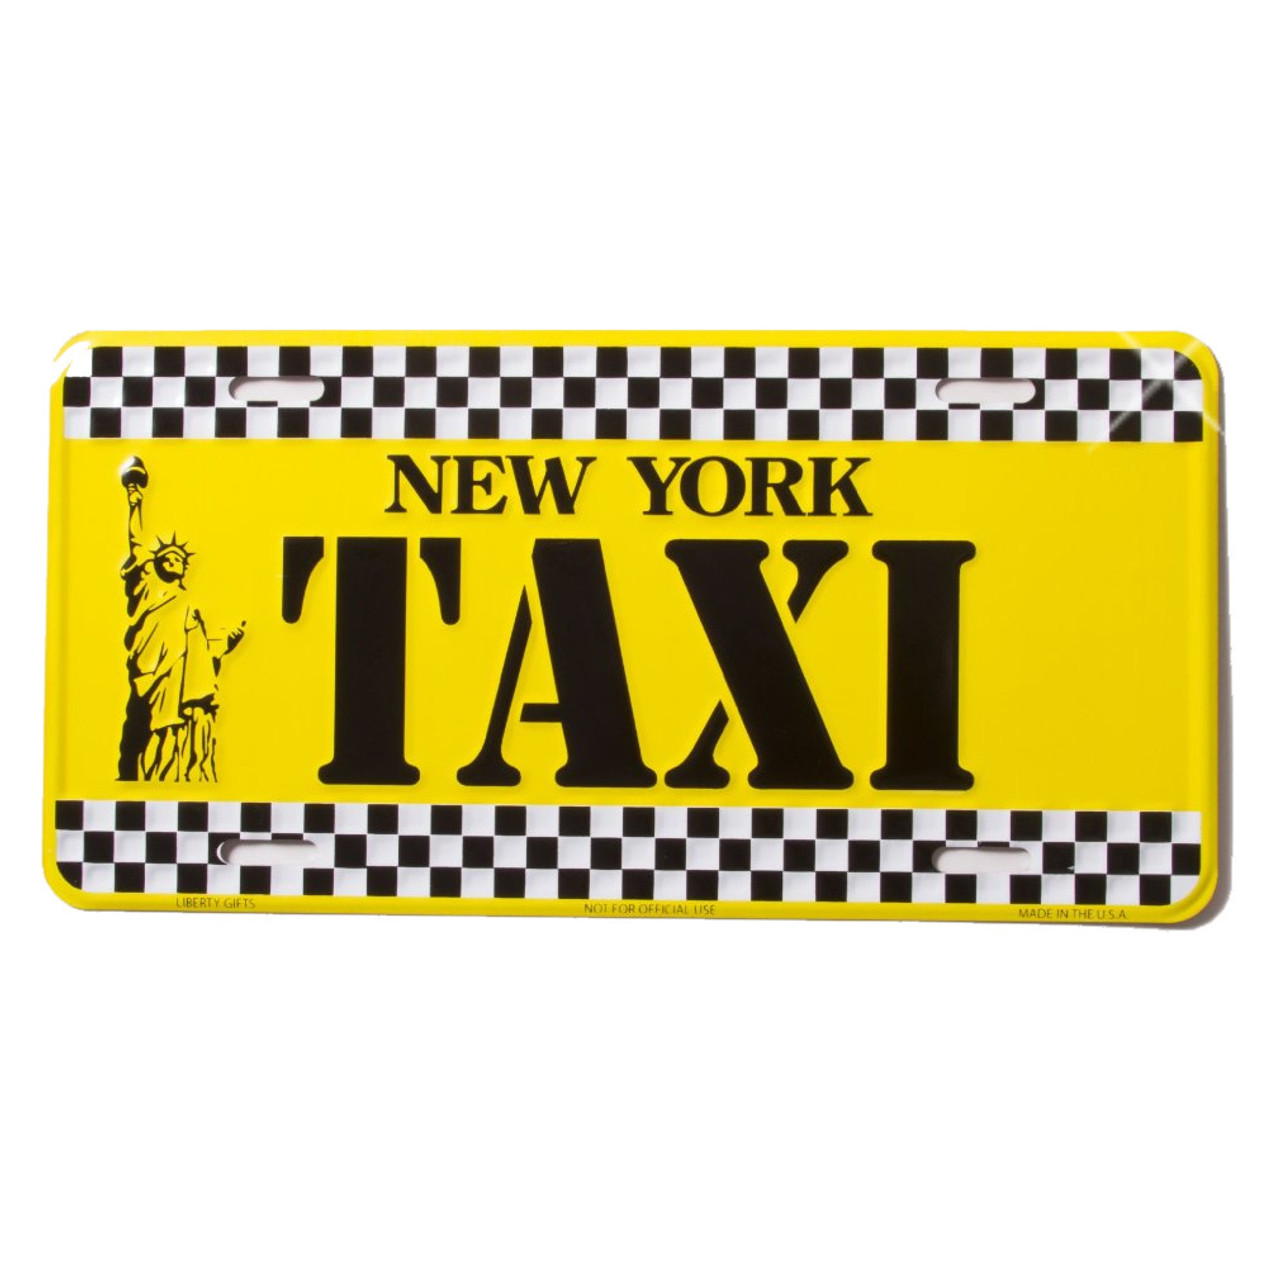 New York Taxi License Plate